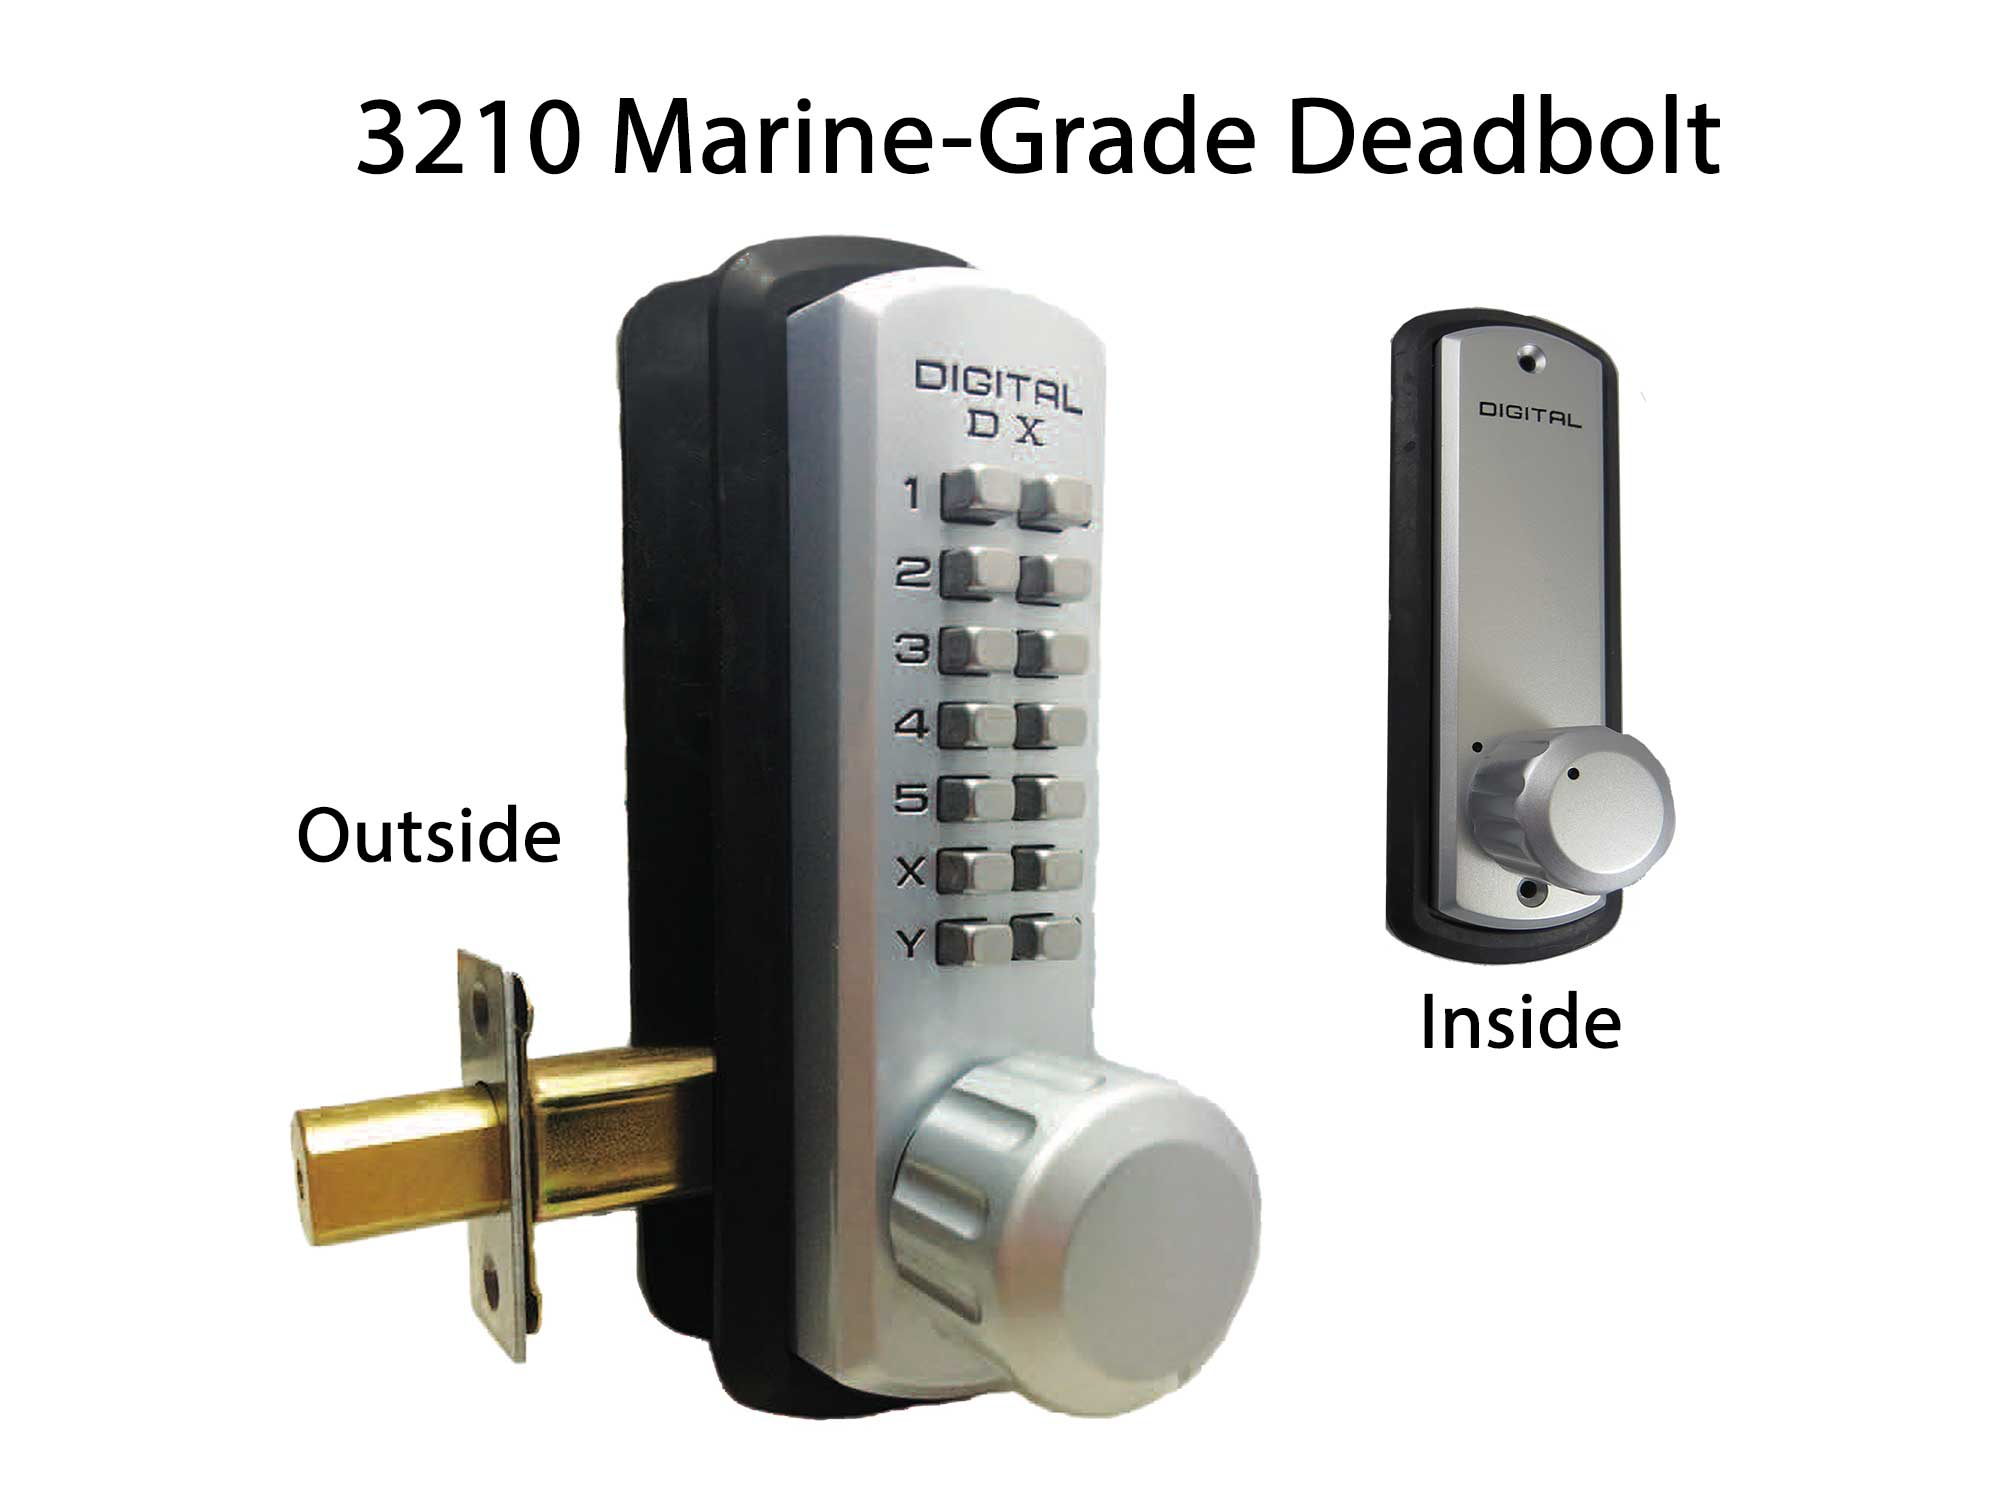 Lockey 3210 Marine-Grade Heavy-Duty Deadbolt Keypad Lock